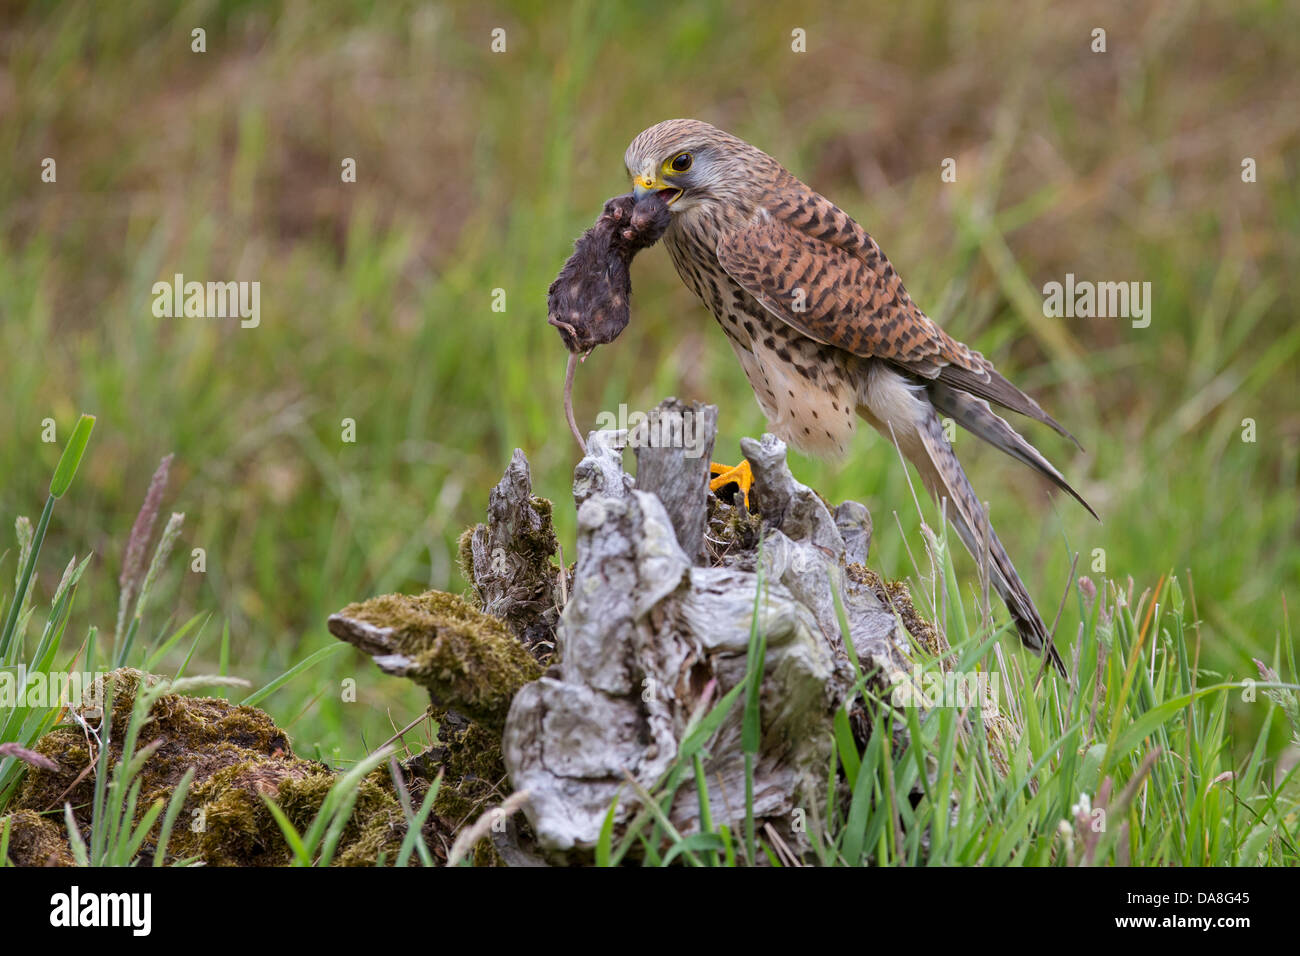 Female Kestrel with mouse as prey - Stock Image